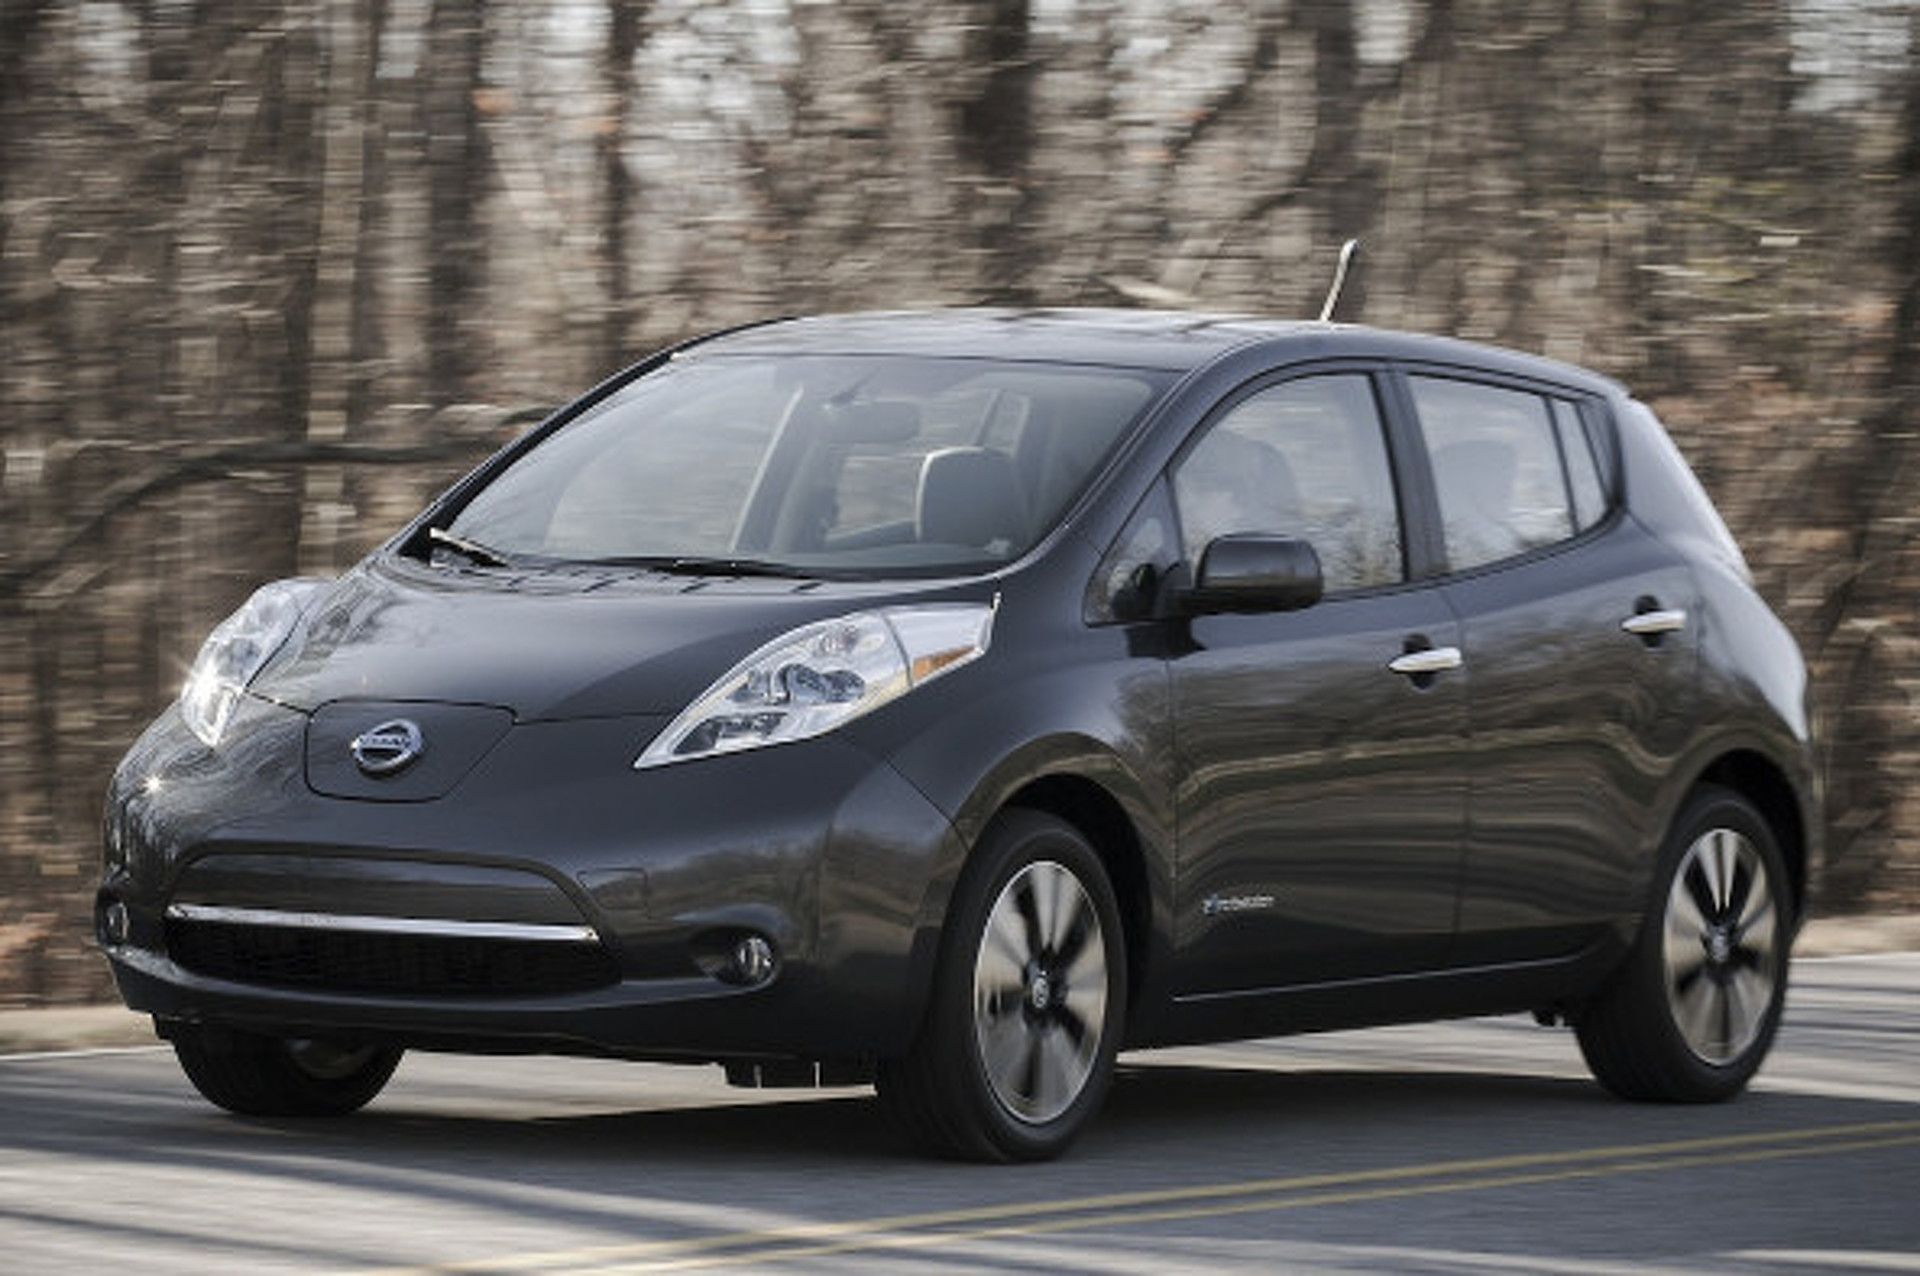 EPA's Top Ten Most Efficient Vehicles of 2013